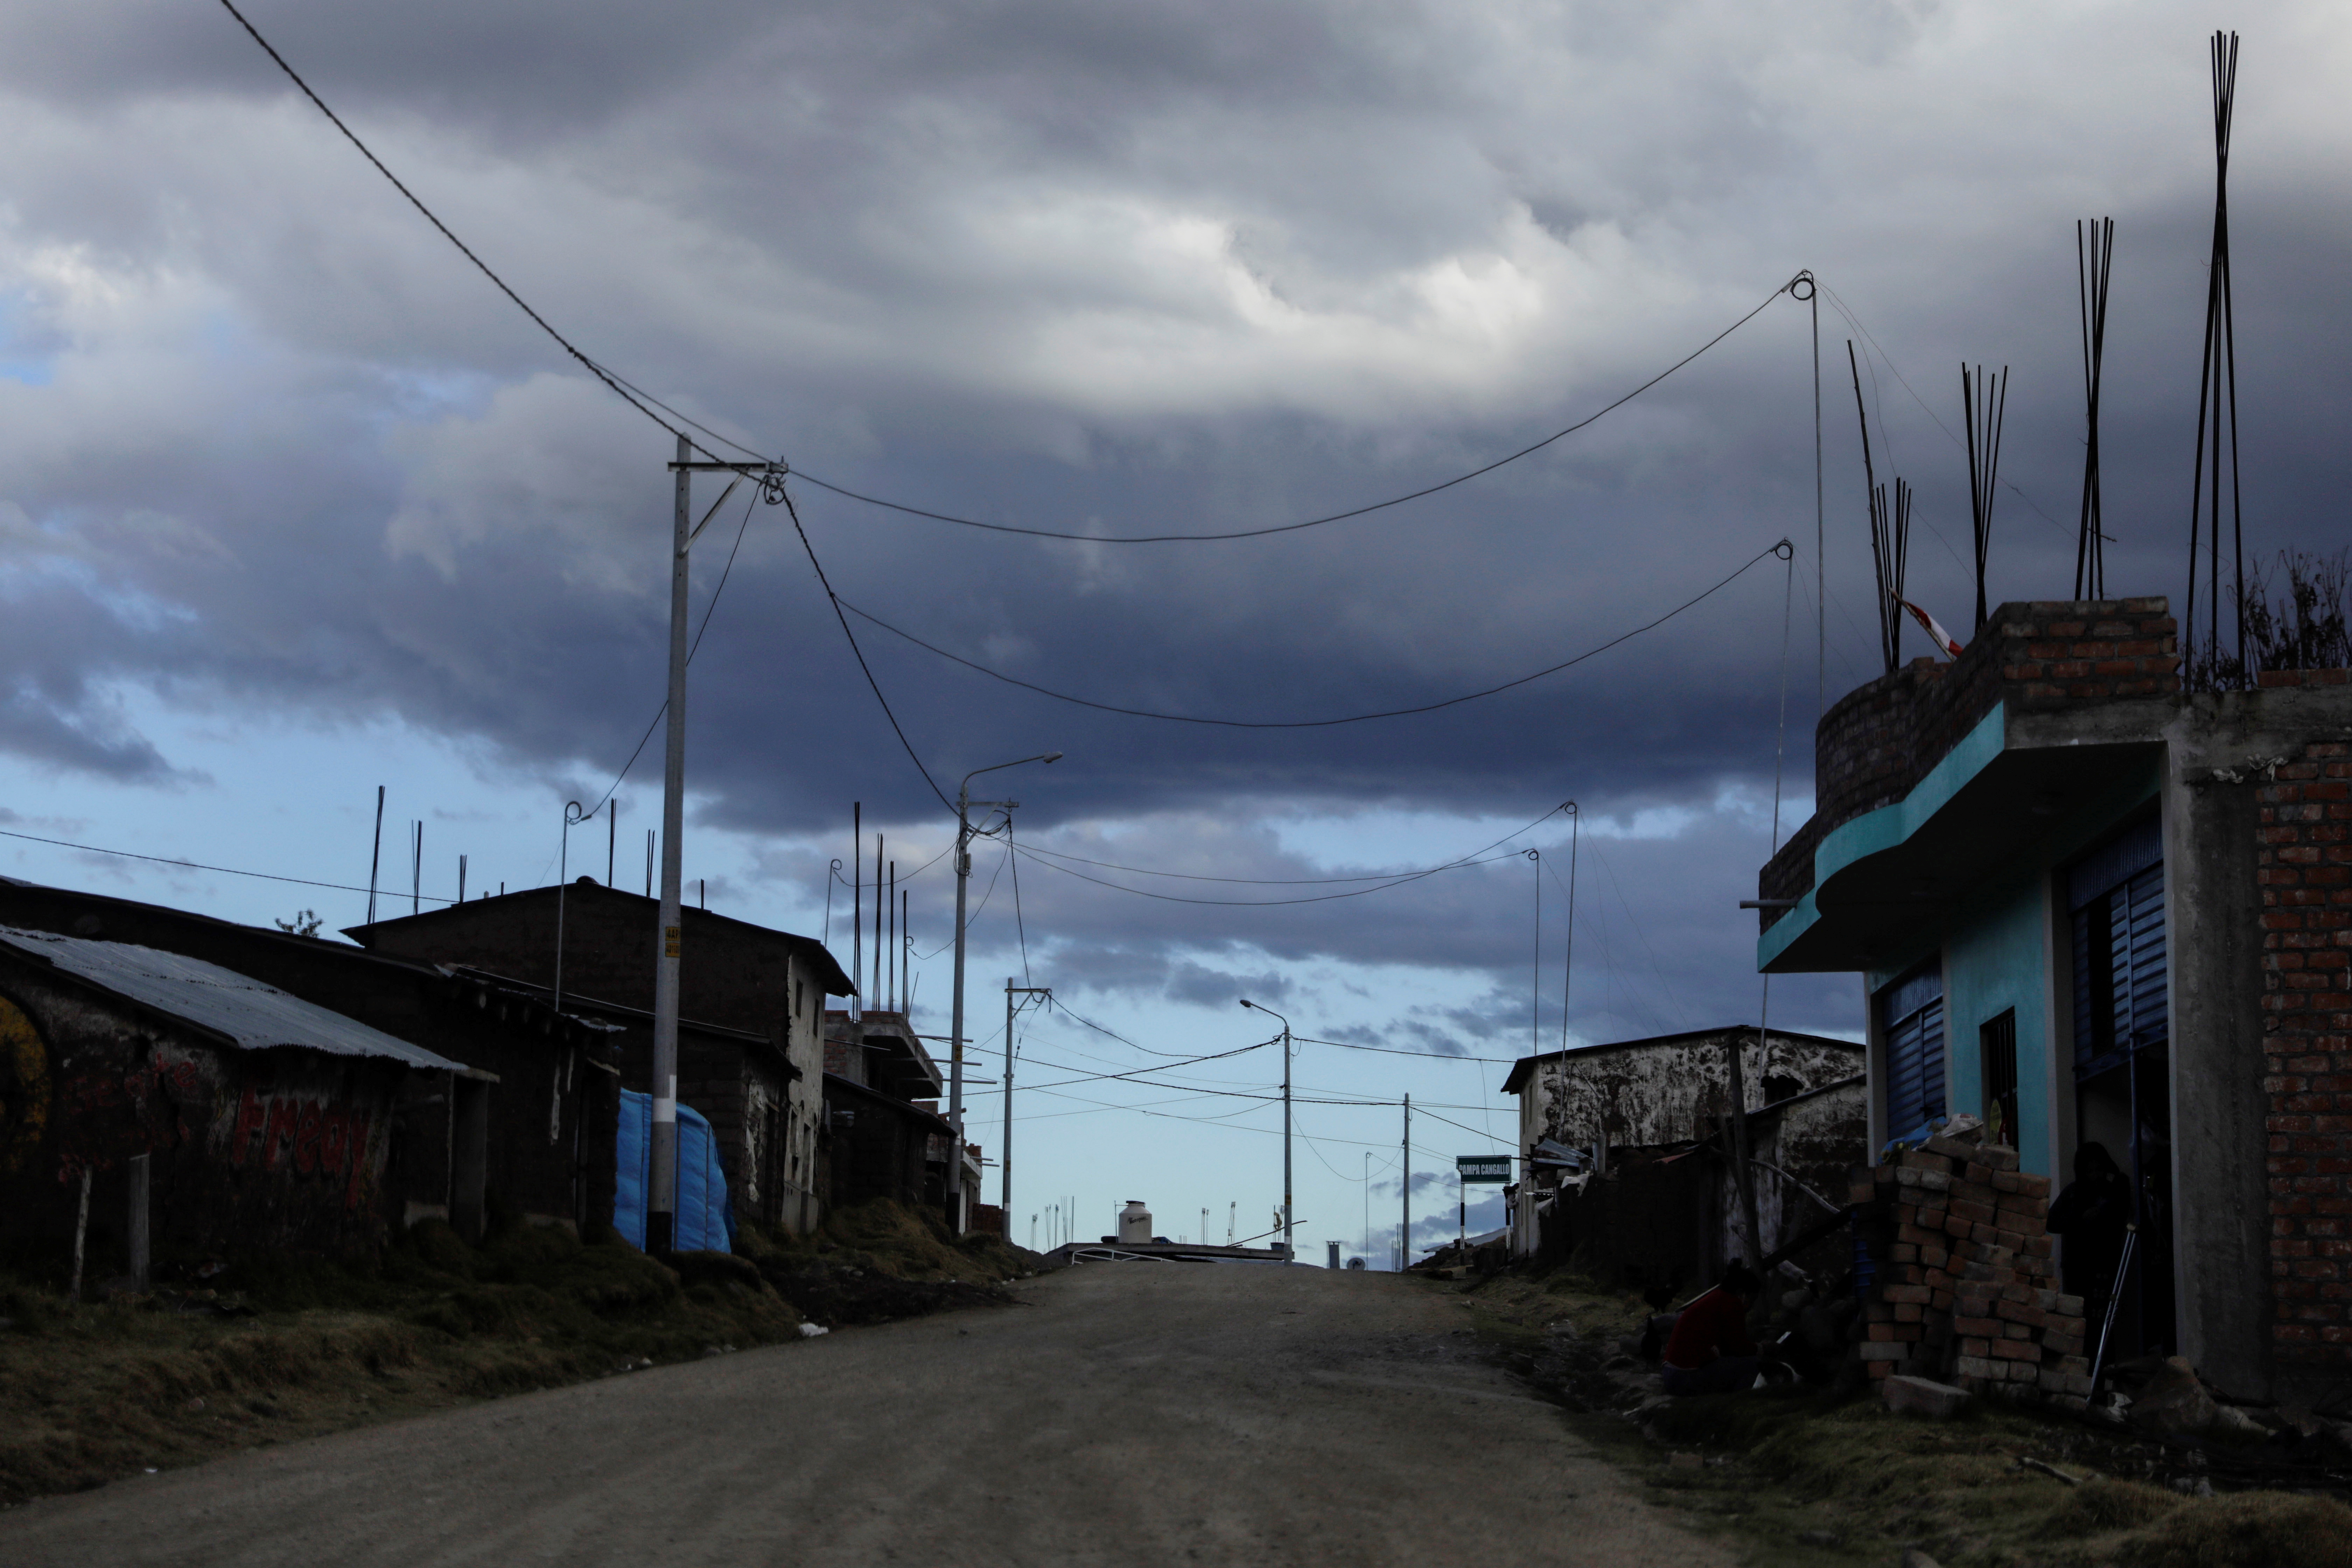 A street is seen at dusk in the region where Shining Path, the Peruvian guerrilla group whose founder Abimael Guzman recently died, was once active, near Ayacucho, Peru September 13, 2021. Picture taken September 13, 2021. REUTERS/Alessandro Cinque